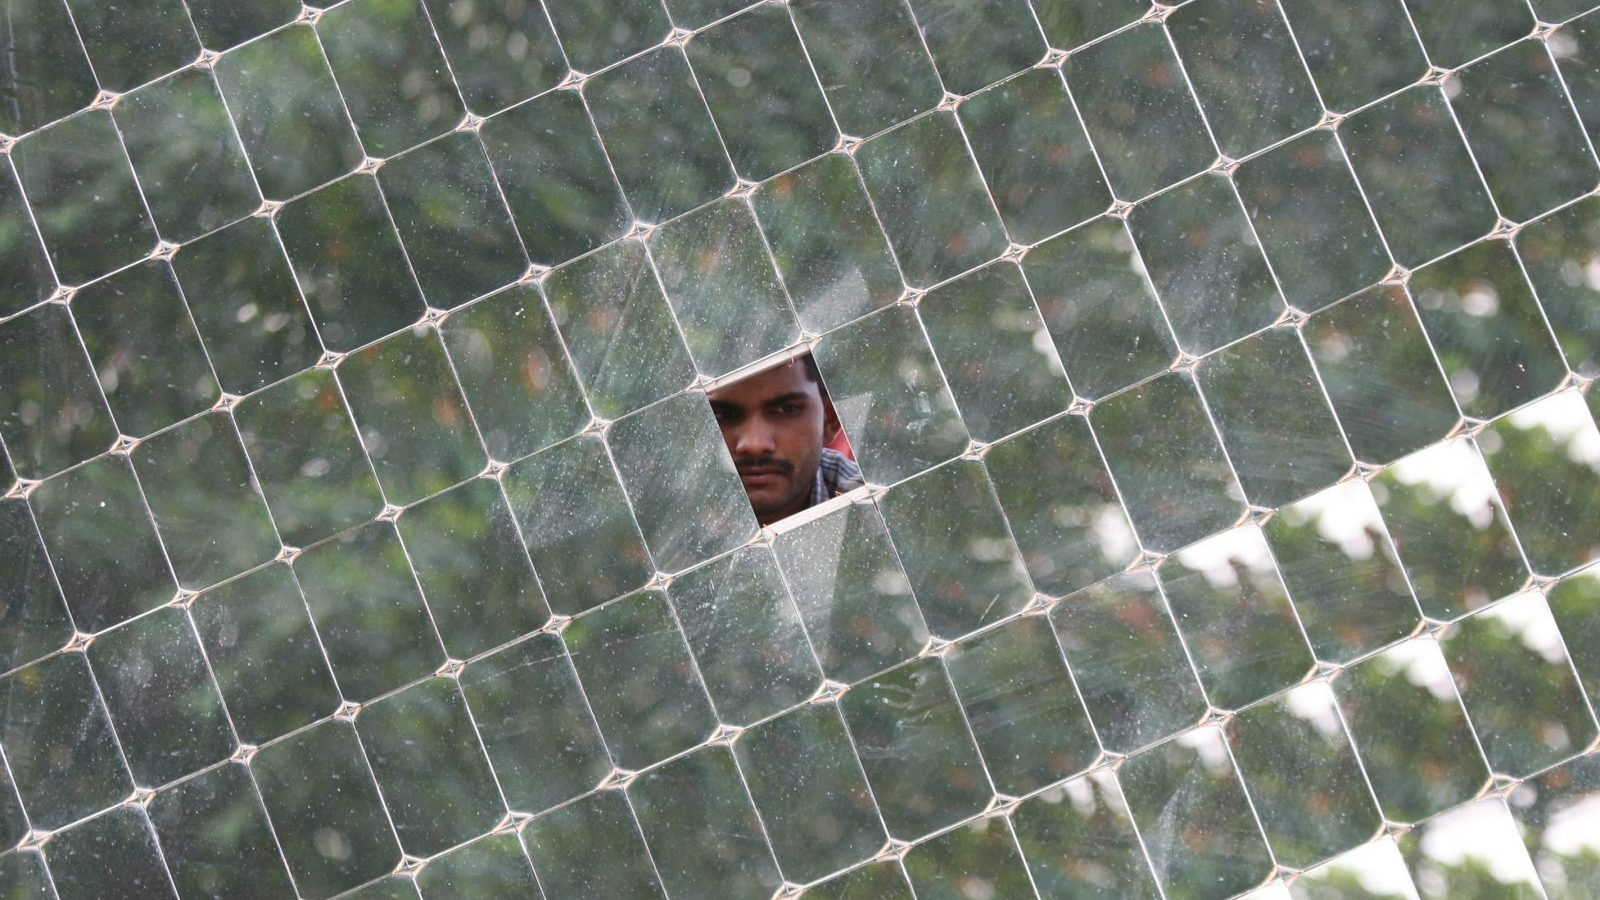 A worker looks through a solar concentrator panel (solar parabolic dish) at the Gadhia solar energy systems manufacturing unit at Gundlav village, about 400 km (250 miles) south of the western Indian city of Ahmedabad, December 16, 2009. REUTERS/Amit Dave (INDIA - Tags: ENERGY ENVIRONMENT EMPLOYMENT BUSINESS) - GM1E5CH0AS001